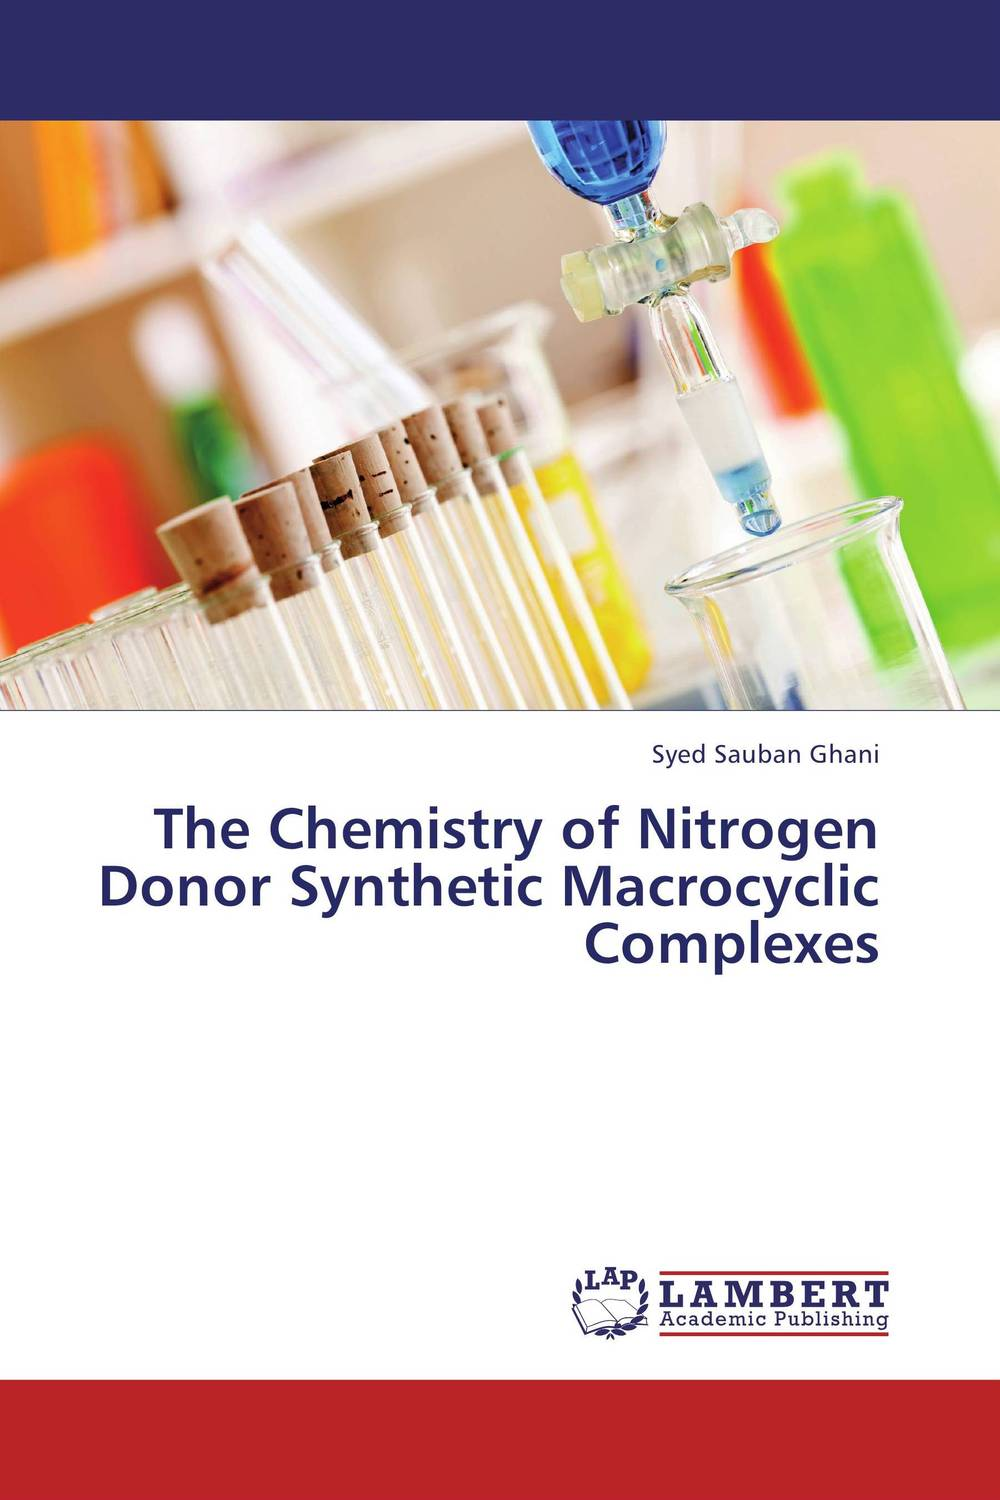 The Chemistry of Nitrogen Donor Synthetic Macrocyclic Complexes synthesis biological studies of macrocyclic transition metal complexes